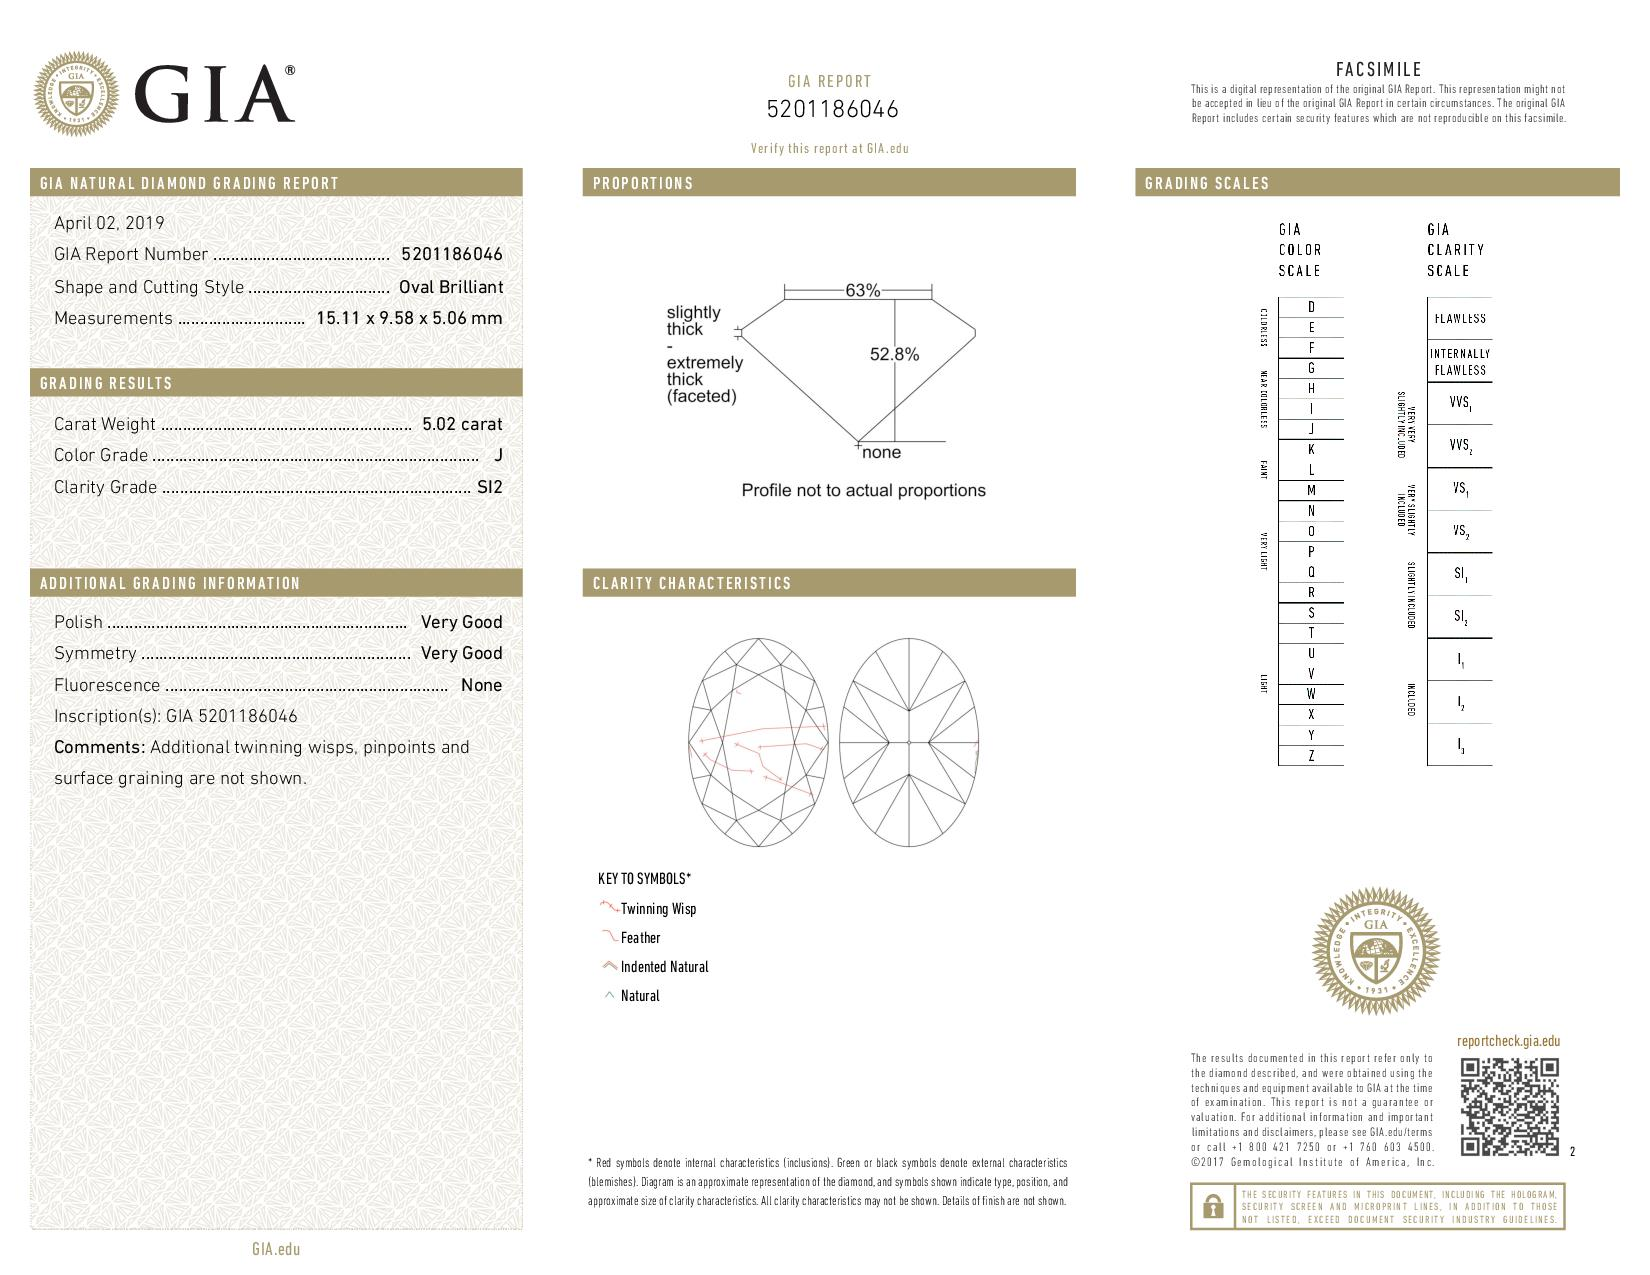 This is a 5.02 carat oval shape, J color, SI2 clarity natural diamond accompanied by a GIA grading report.